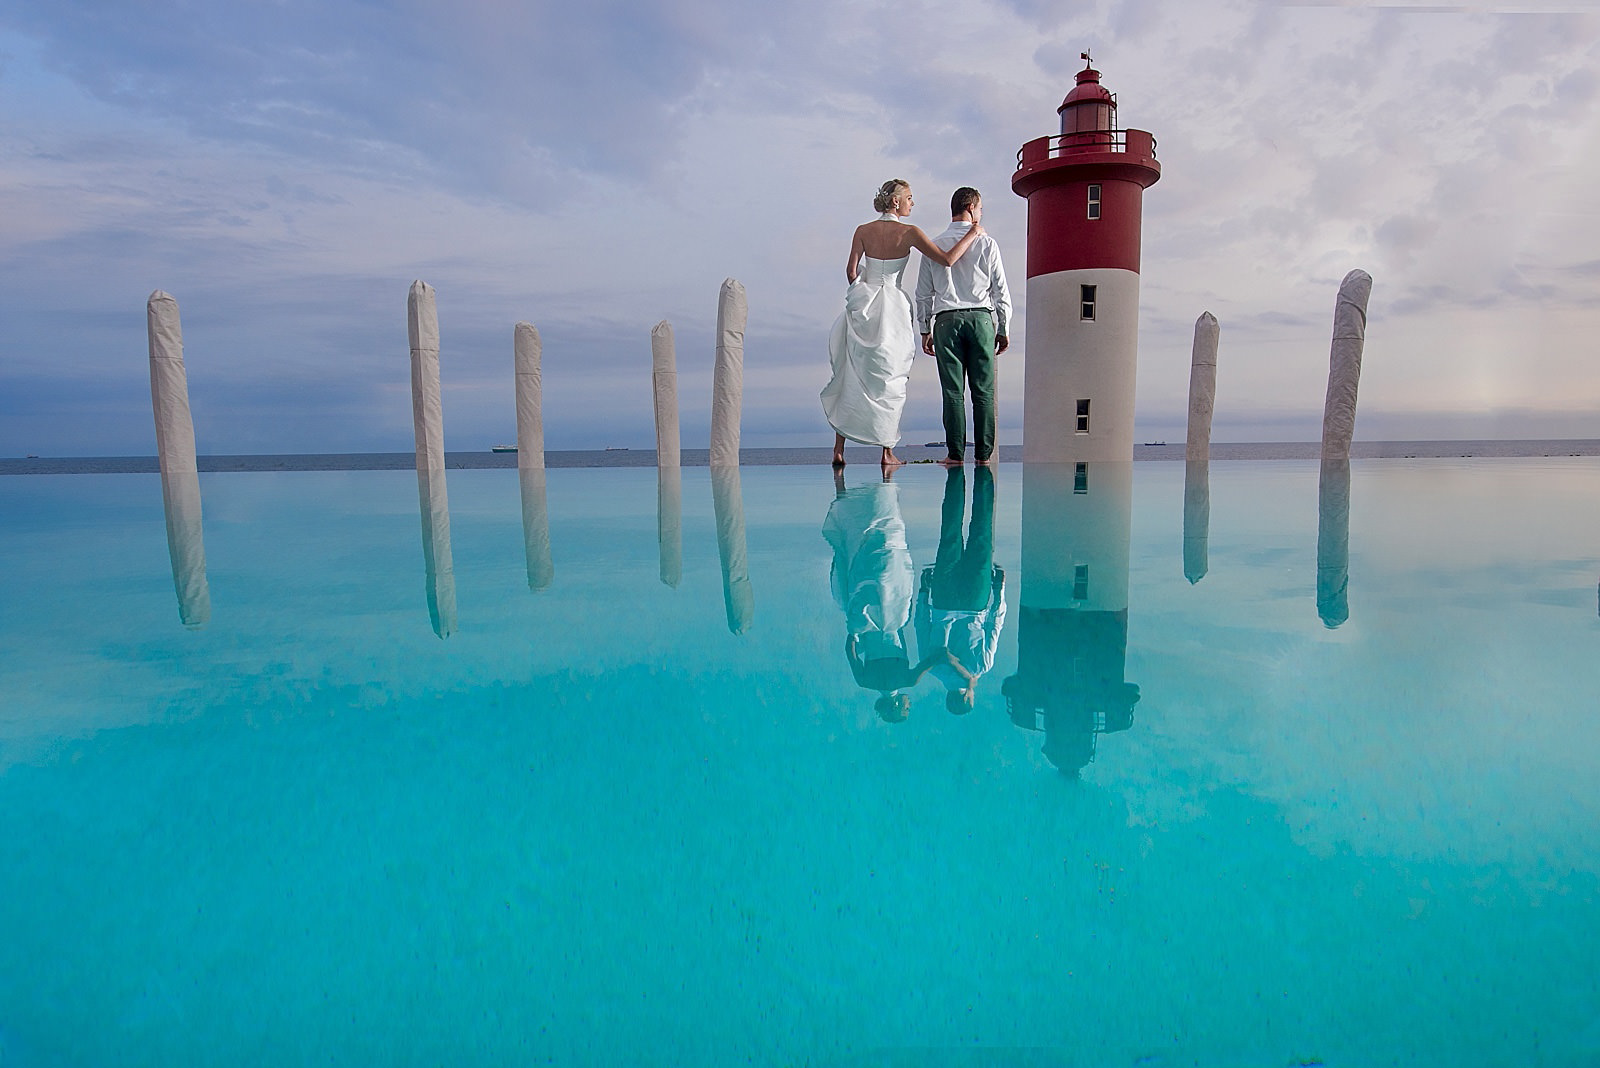 Luxury wedding at the Oysterbox hotel, photographed by Jacki Bruniquel